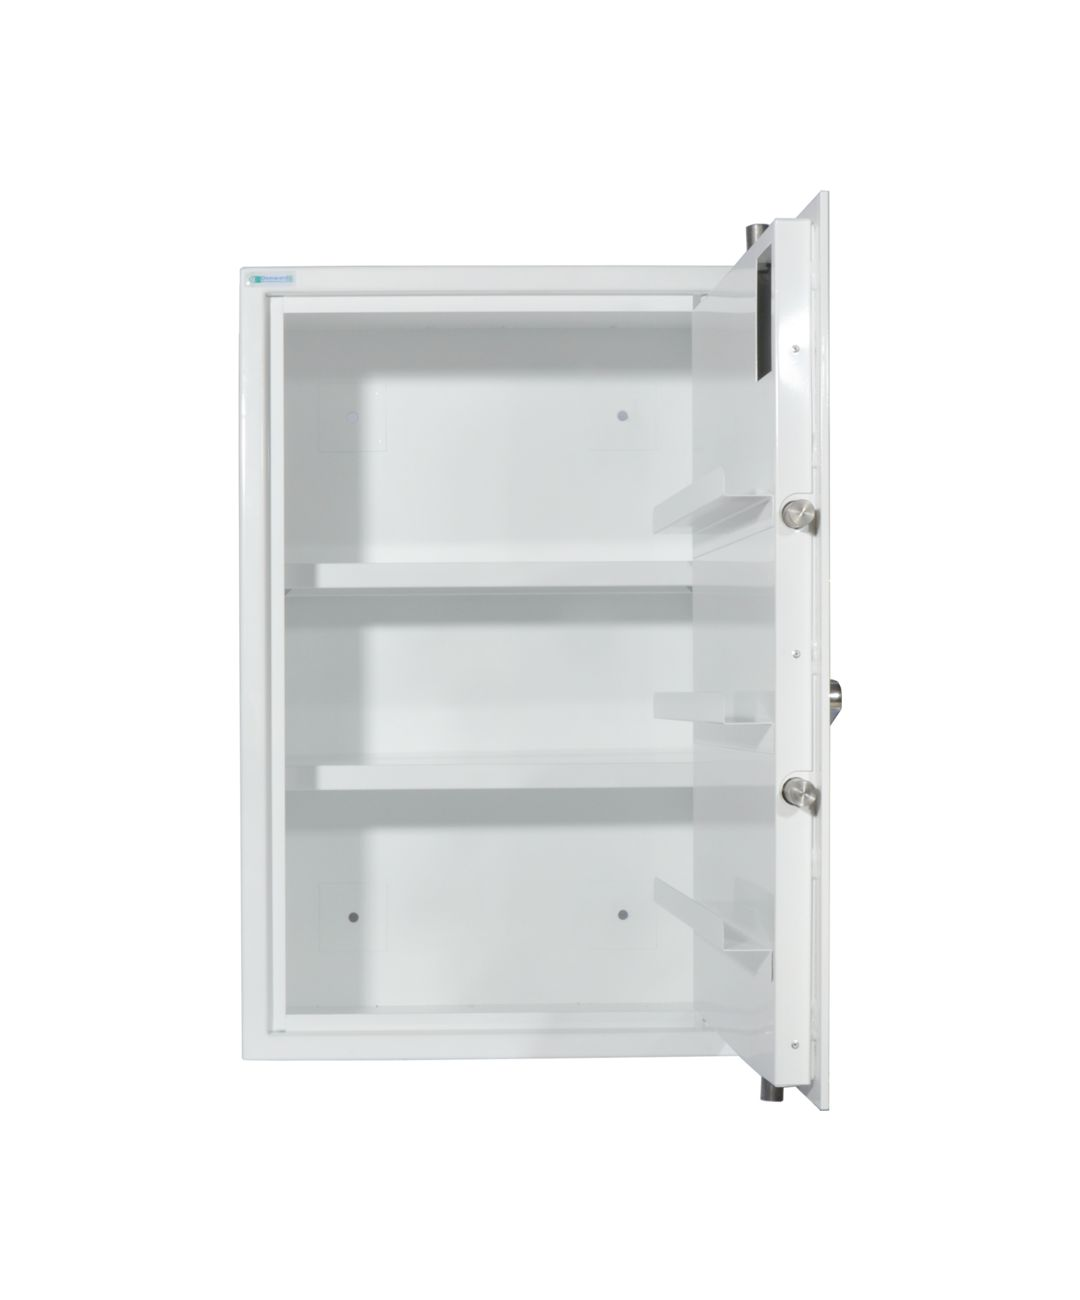 Controlled Drug Cabinet (CDC750) W500 x H750 x D330